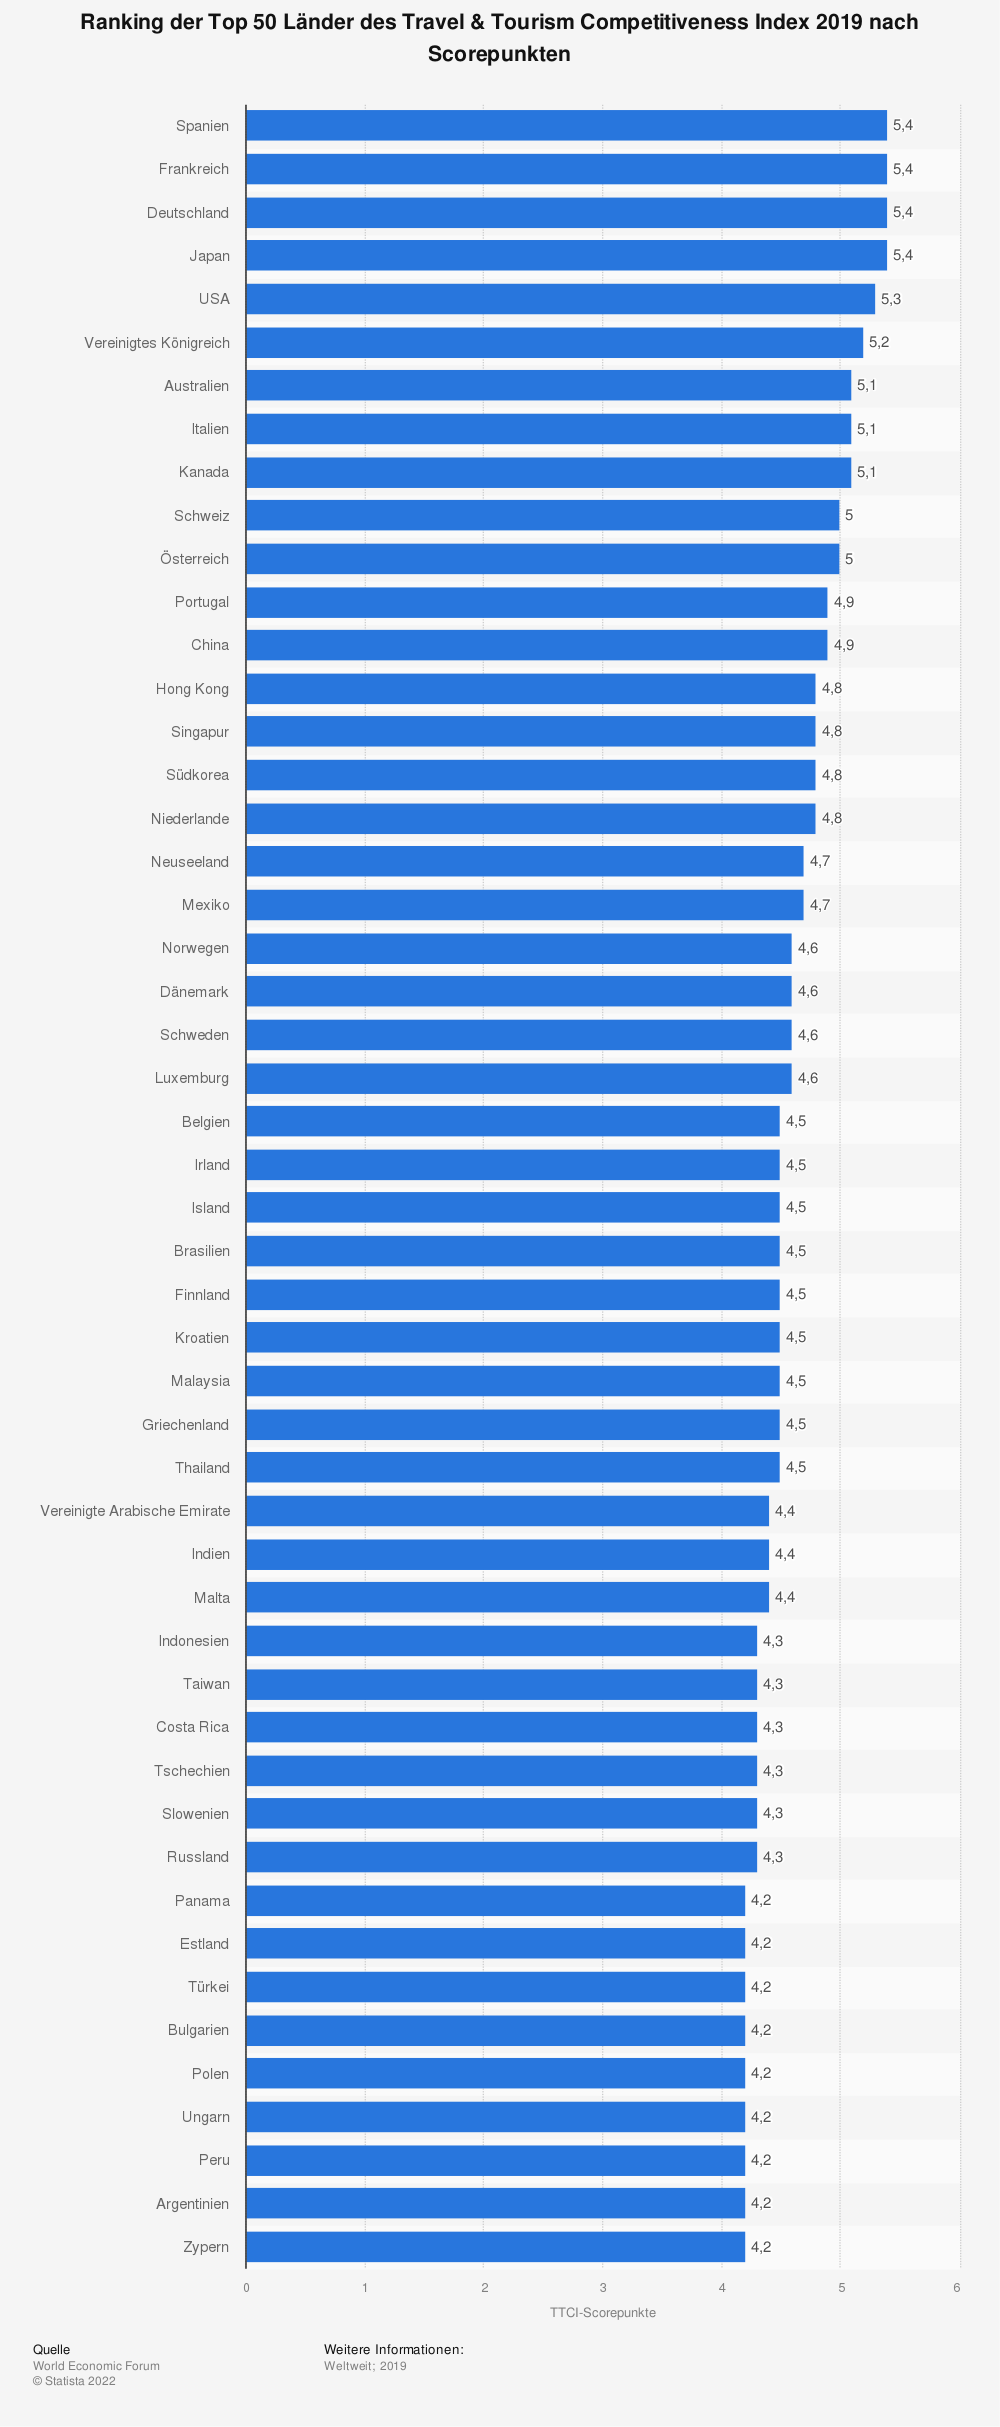 Statistik: Ranking der Top 50 Länder des Travel & Tourism Competitiveness Index 2019 nach Scorepunkten | Statista